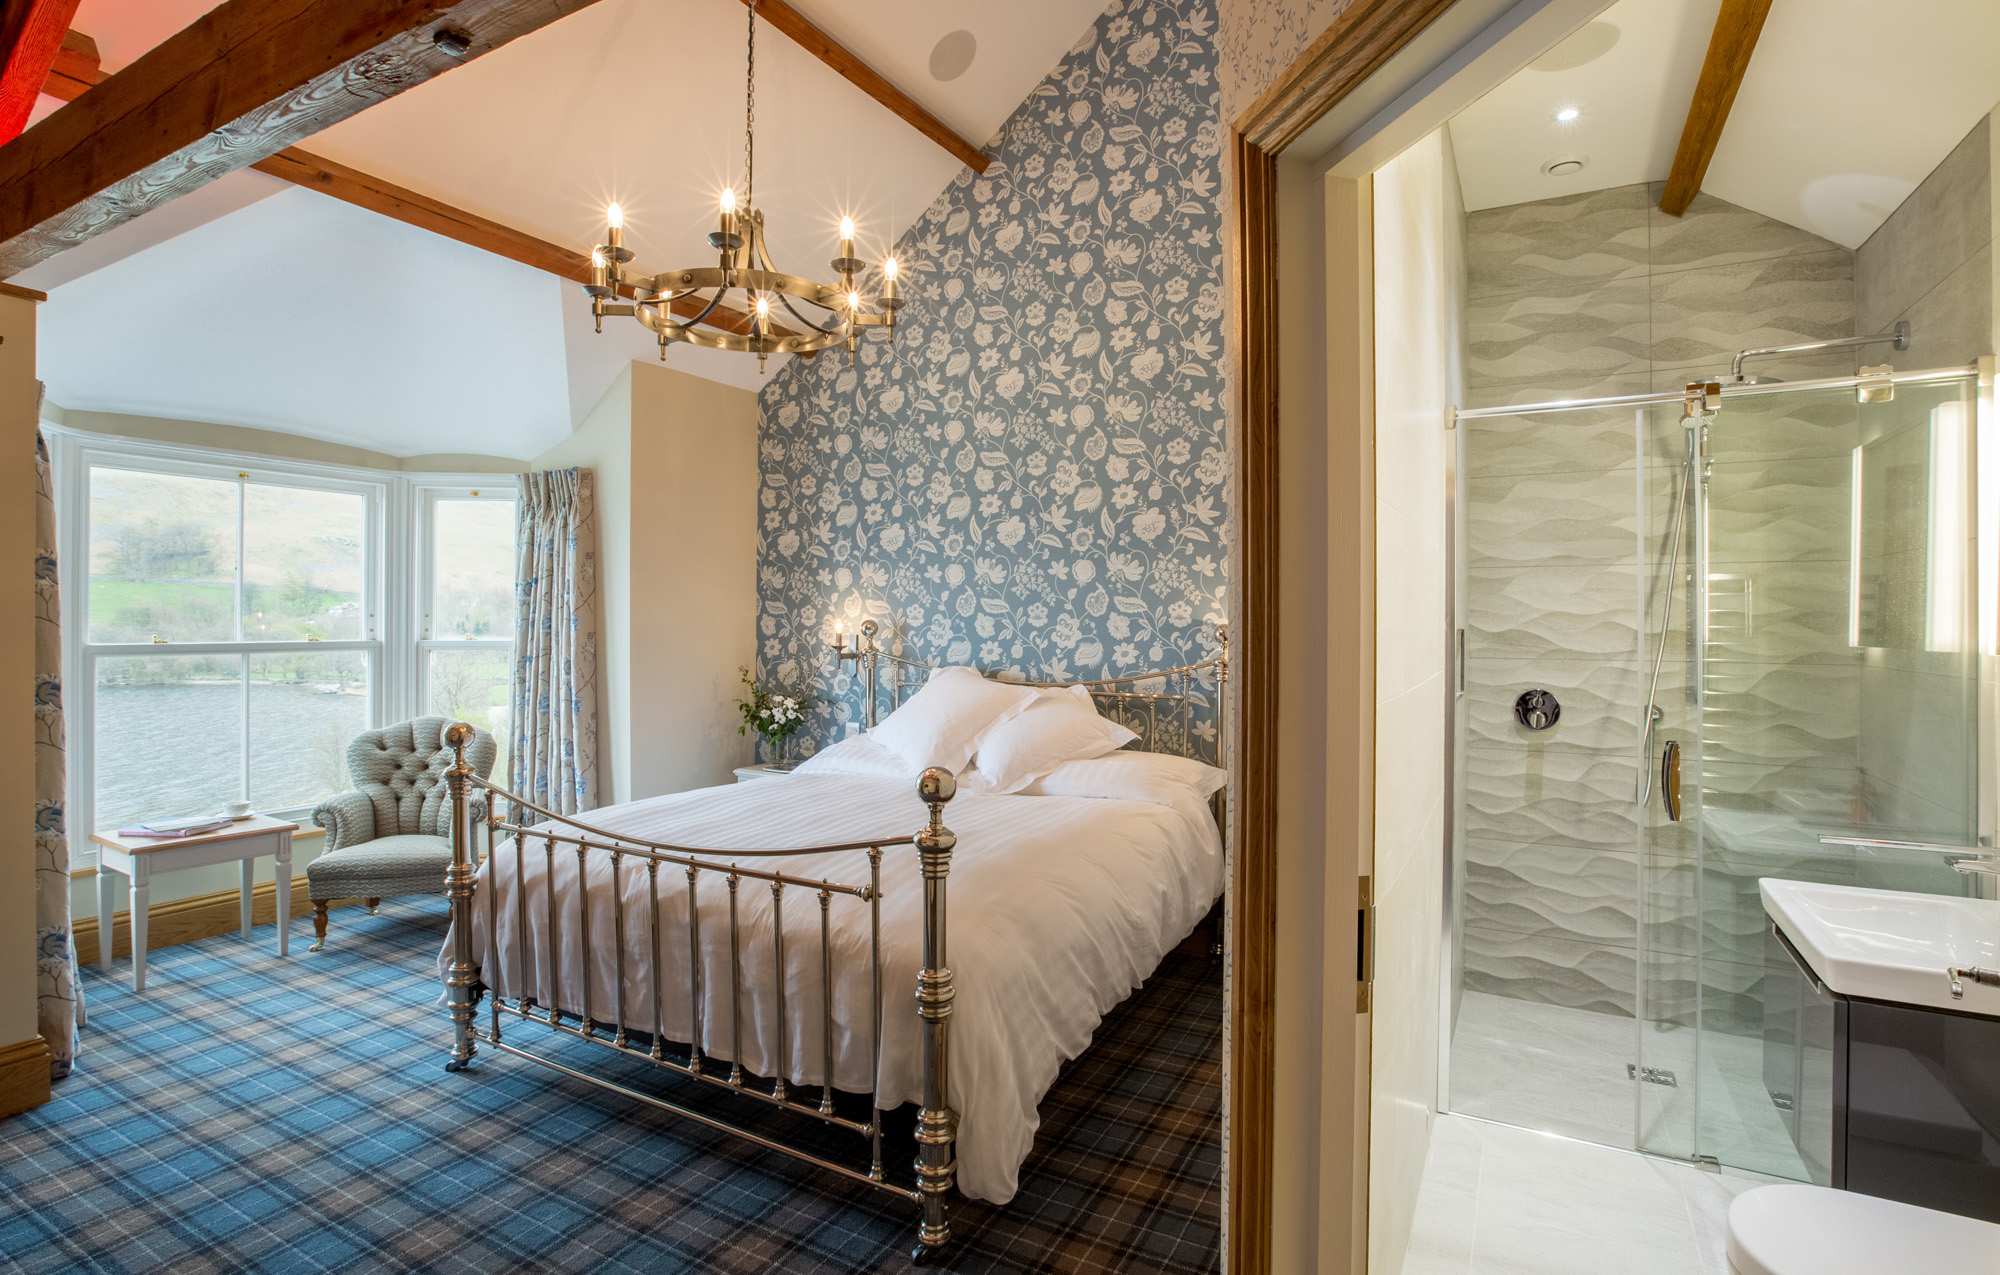 Bedroom at Waternook, Howtown. Overlooking Ullswater in the Lake District, UK. Copyright Ben Barden Photography Ltd. 2015